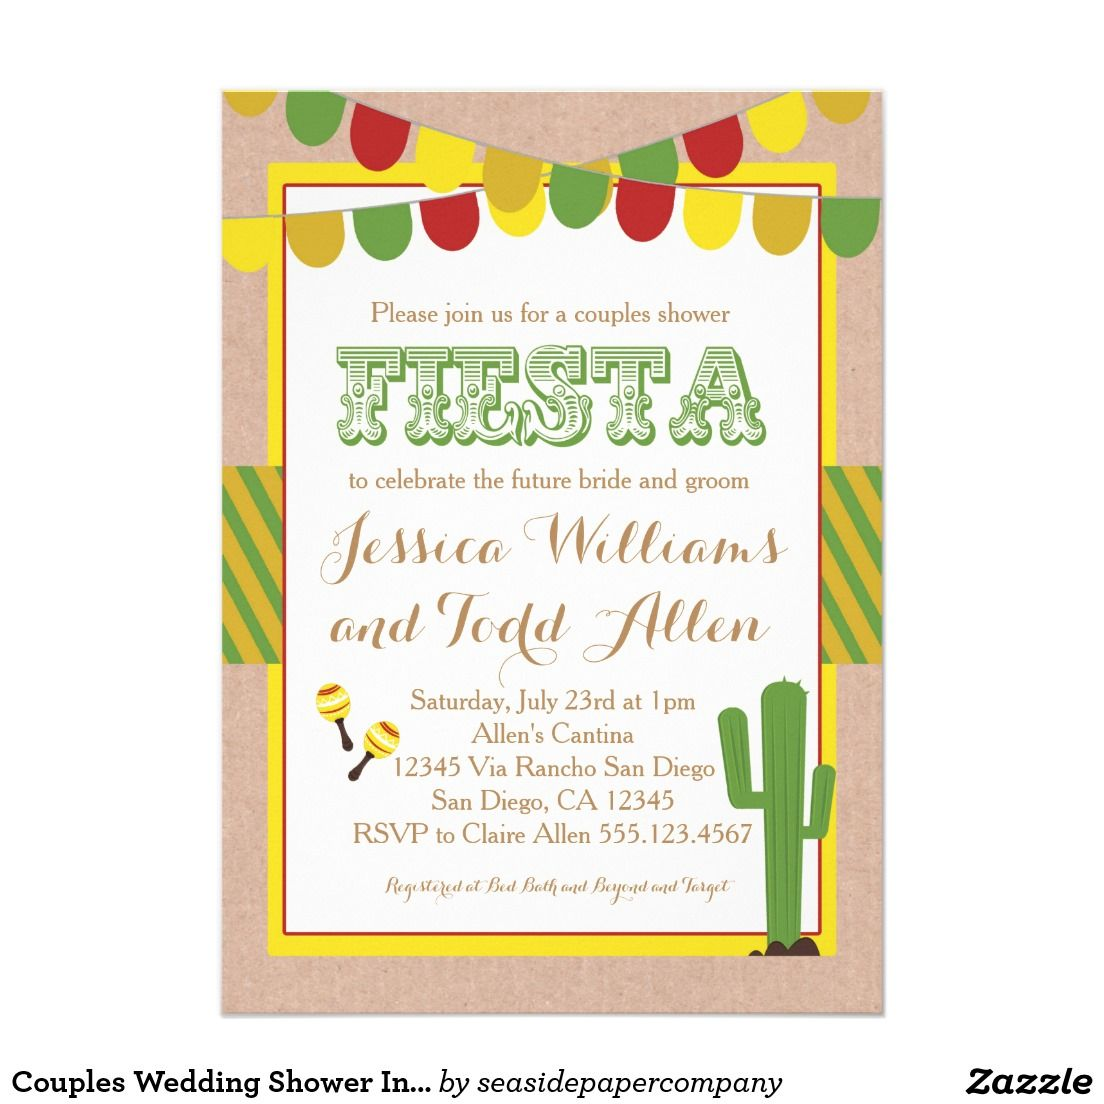 Couples Wedding Shower Invitation Fiesta | ILLUSTRATED WEDDING ...